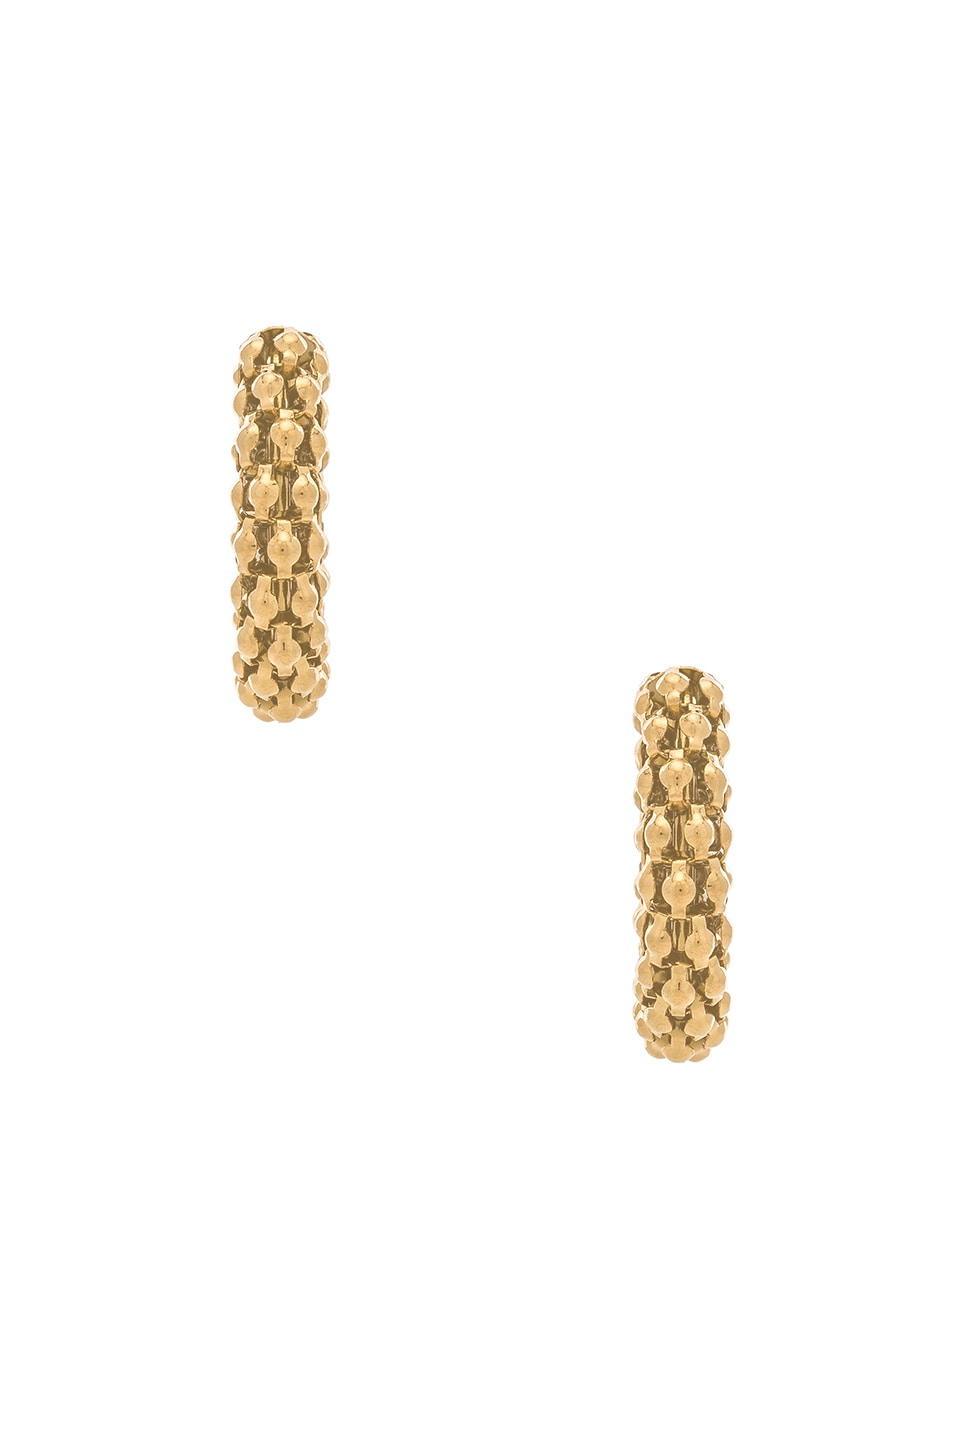 Amber Sceats Marcella Earrings in Gold